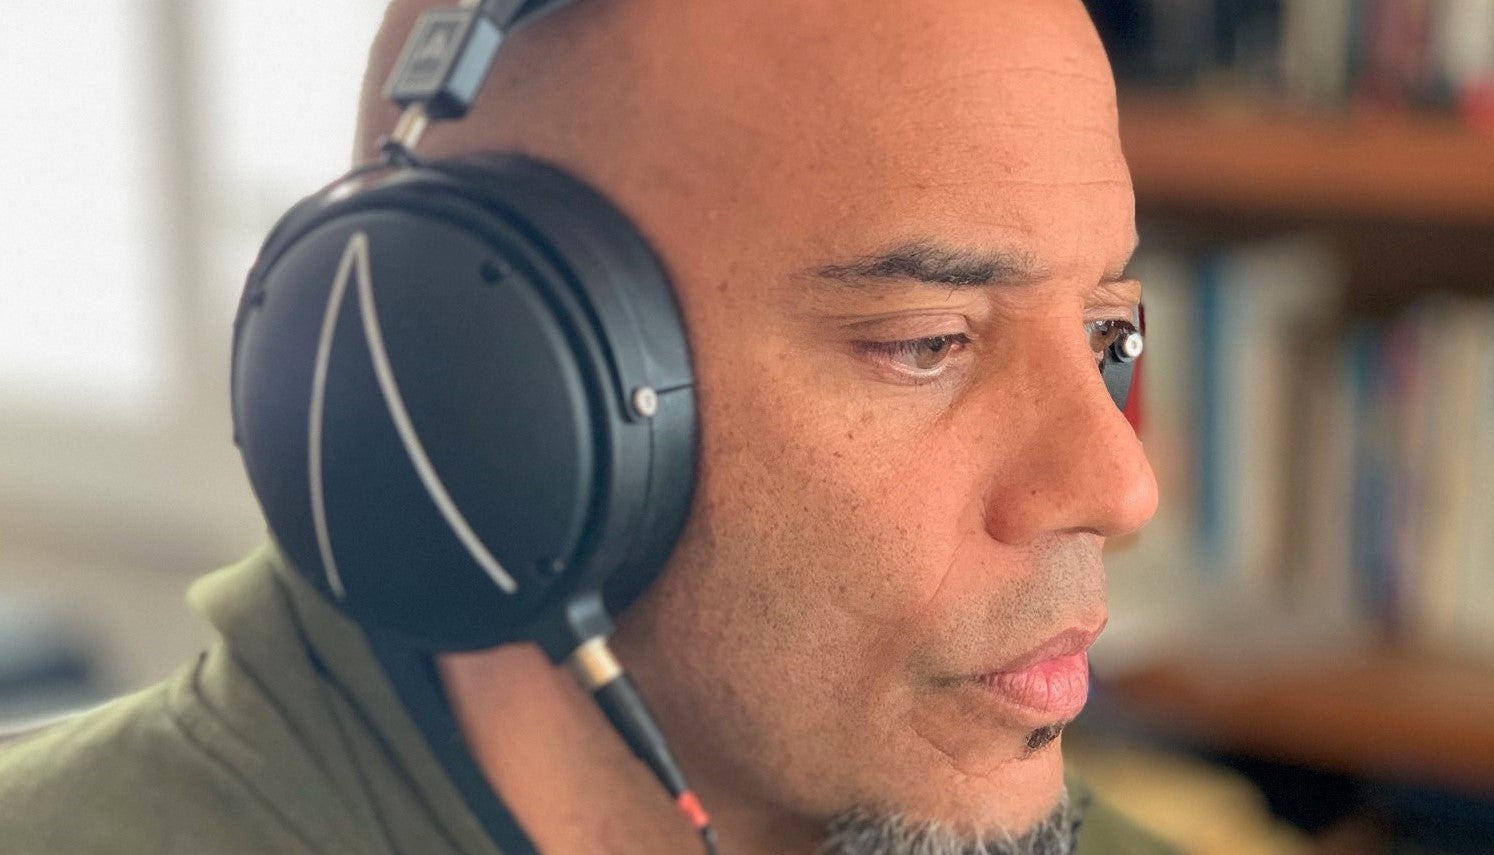 Audeze talks music with jazz bassist and composer Eric Revis